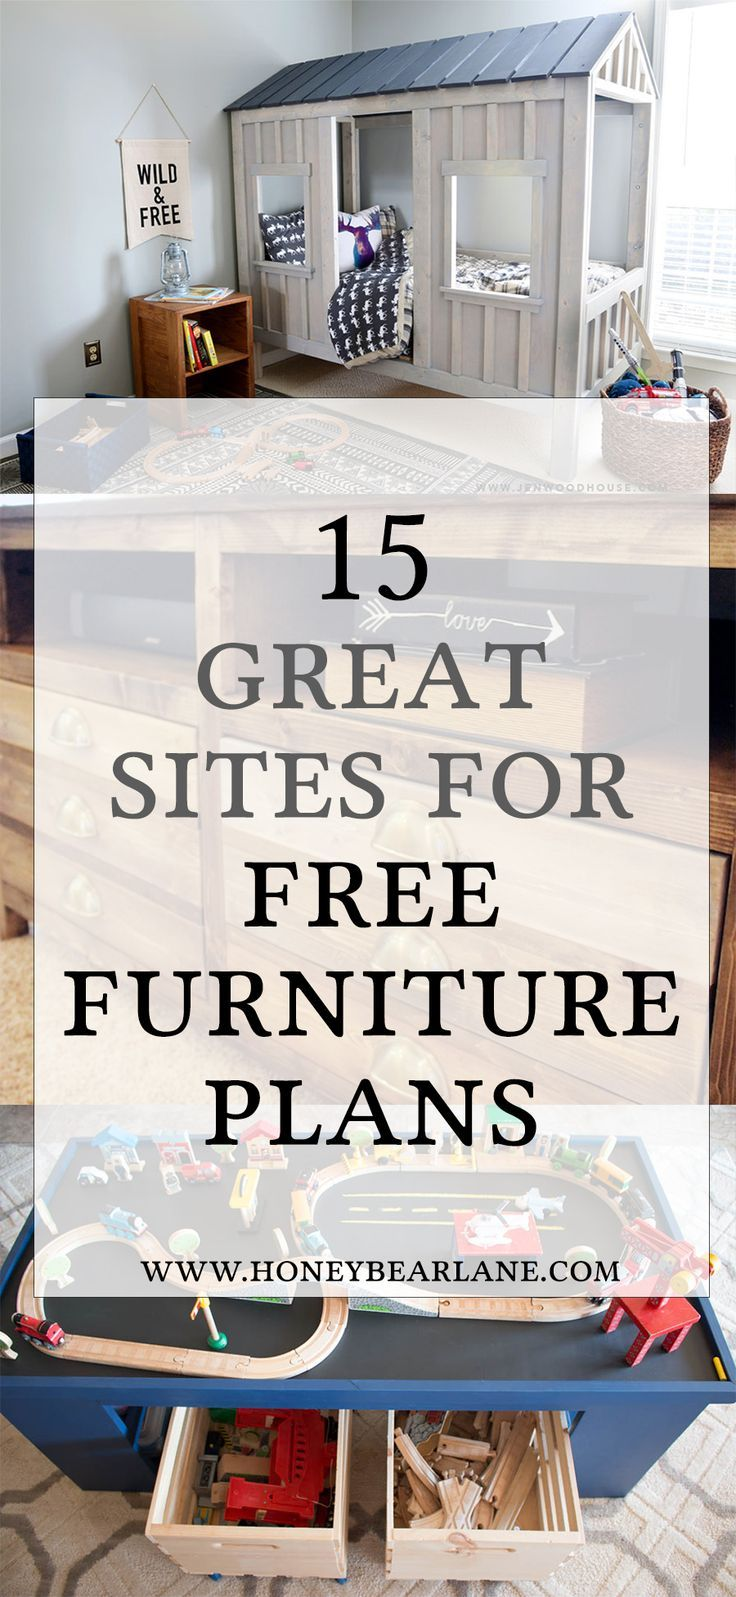 If you're looking to start building, getting furniture plans is a good idea. Here's a list of 15 awesome sites for free furniture building plans.